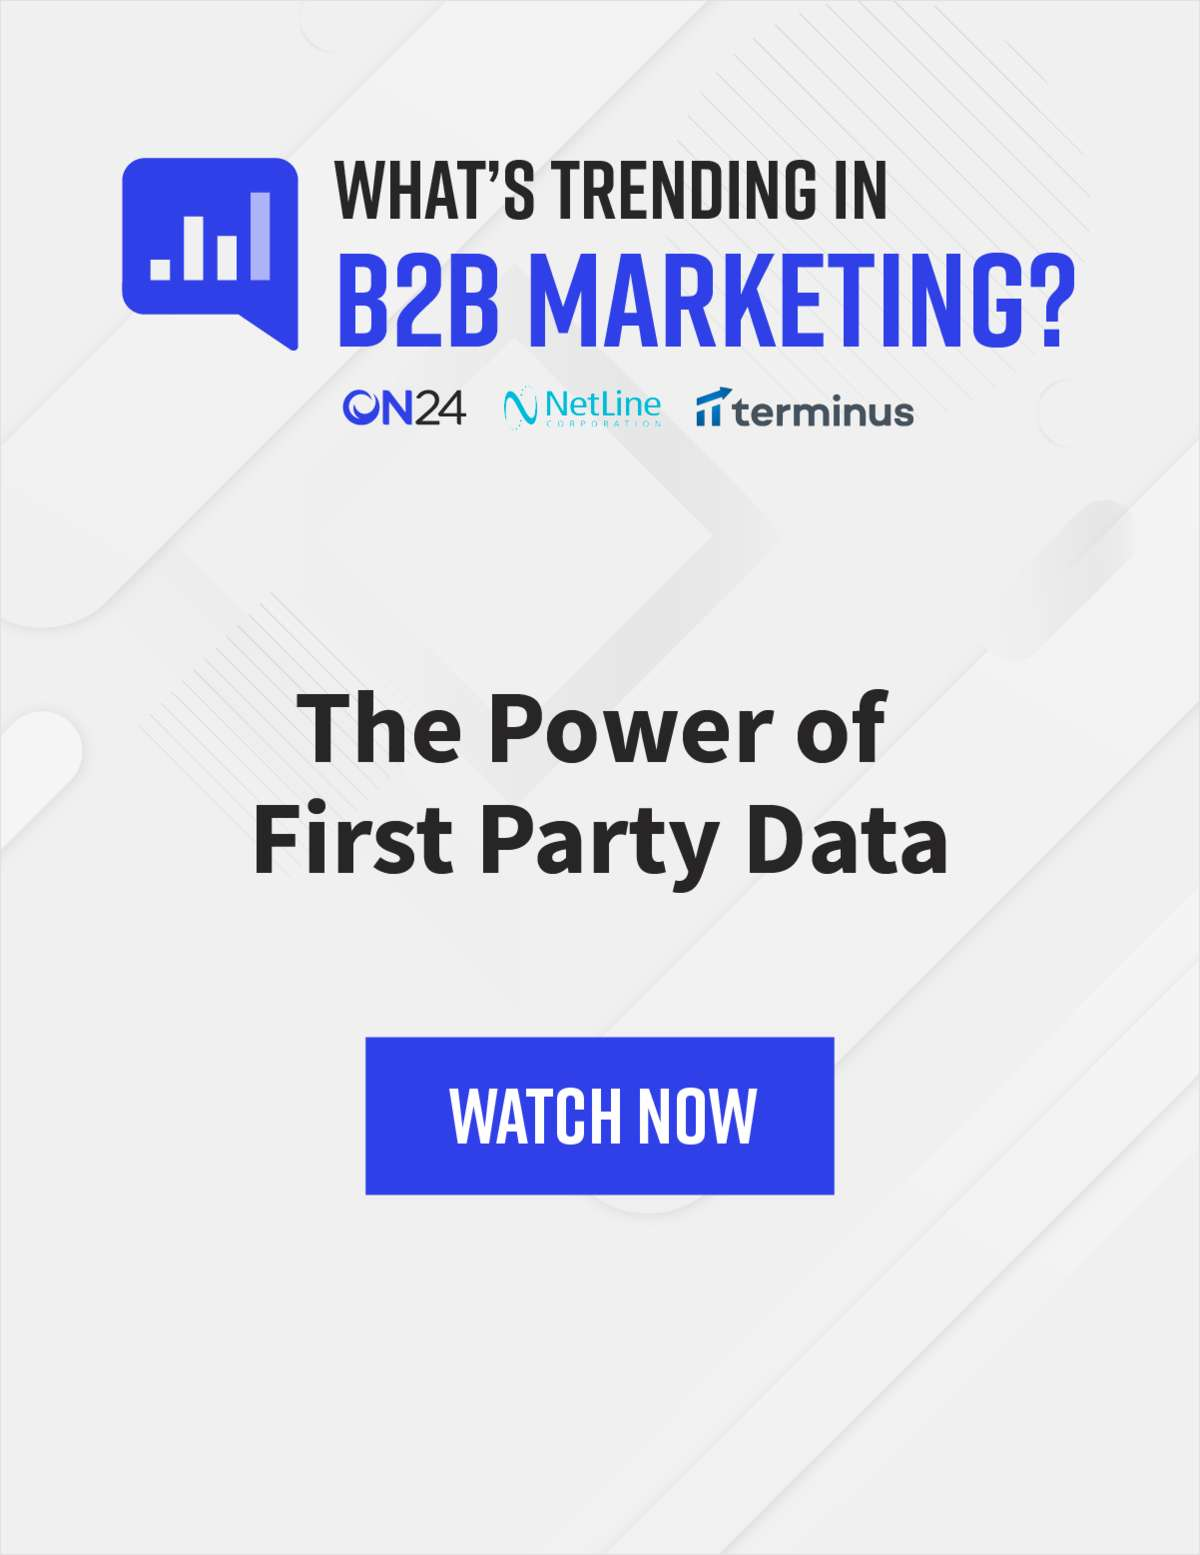 What's Trending in B2B Marketing? The Power of First Party Data